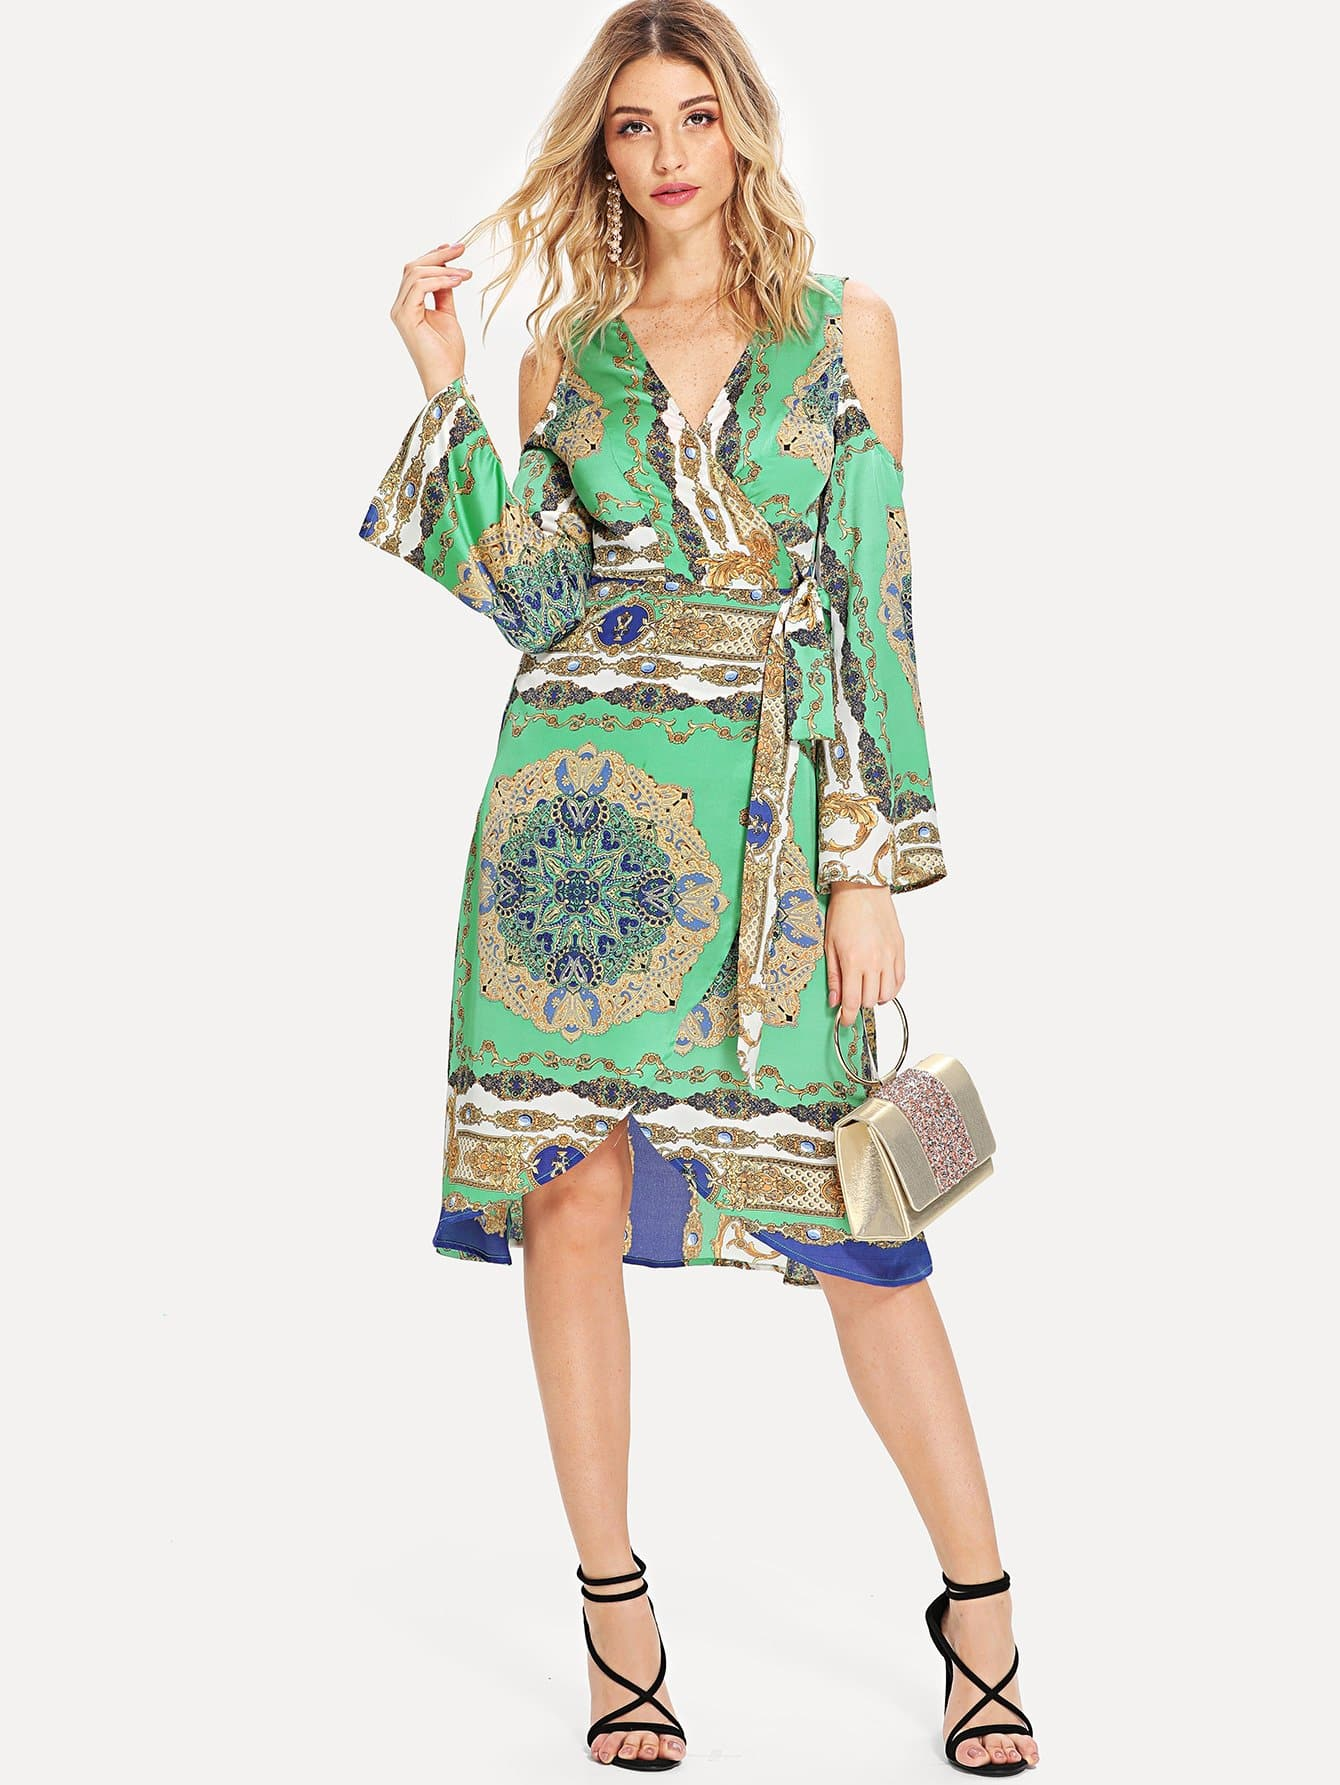 Graphic Print Cold Shoulder Belted Wrap Dress набор цветных карандашей maped color peps 24 шт 17 5 см 183224